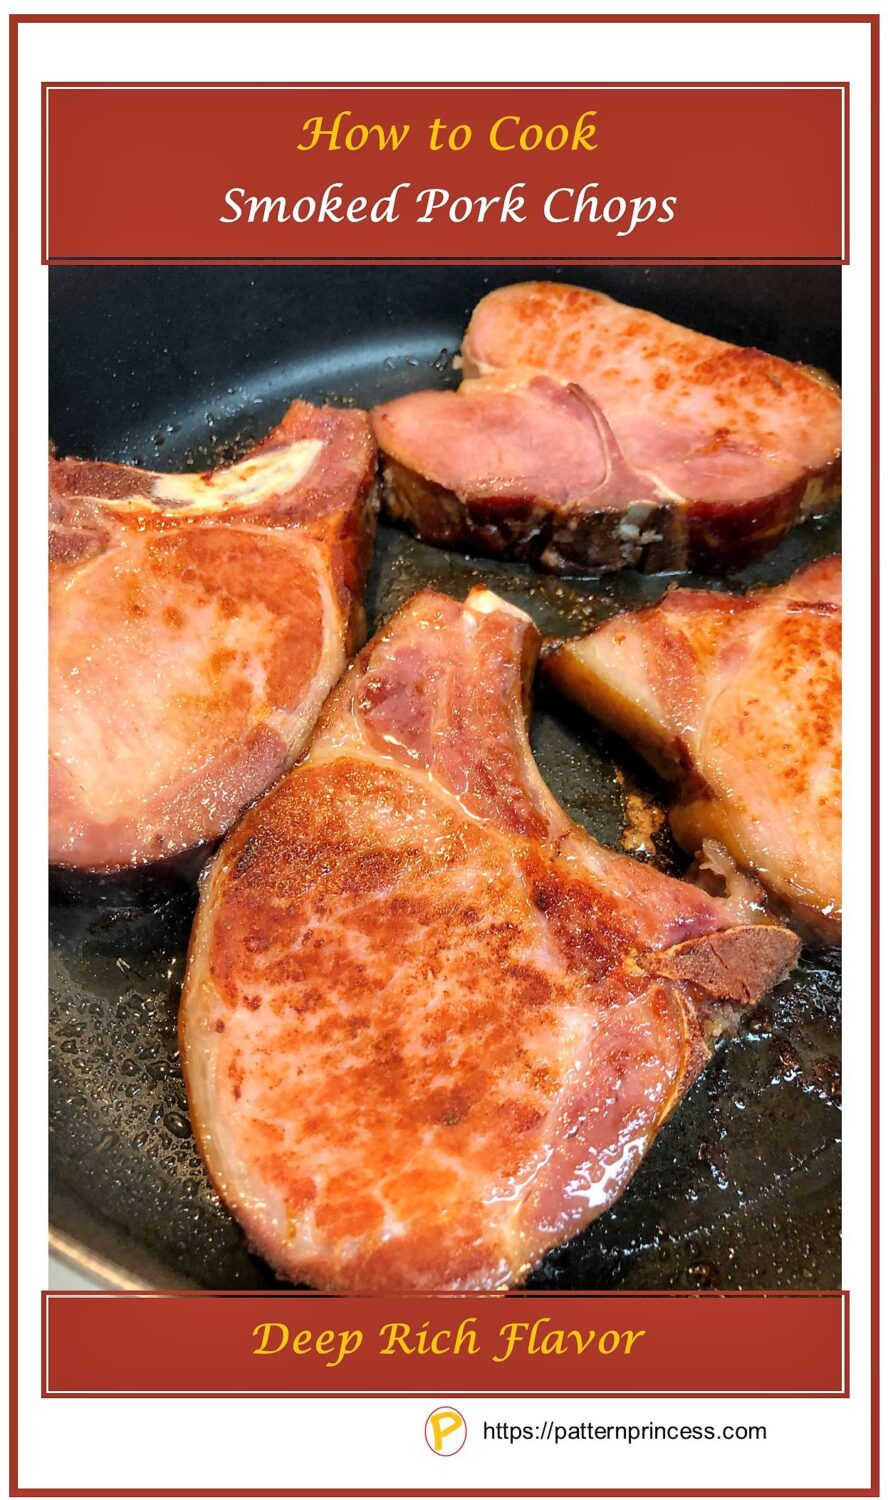 How to Cook Smoked Pork Chops